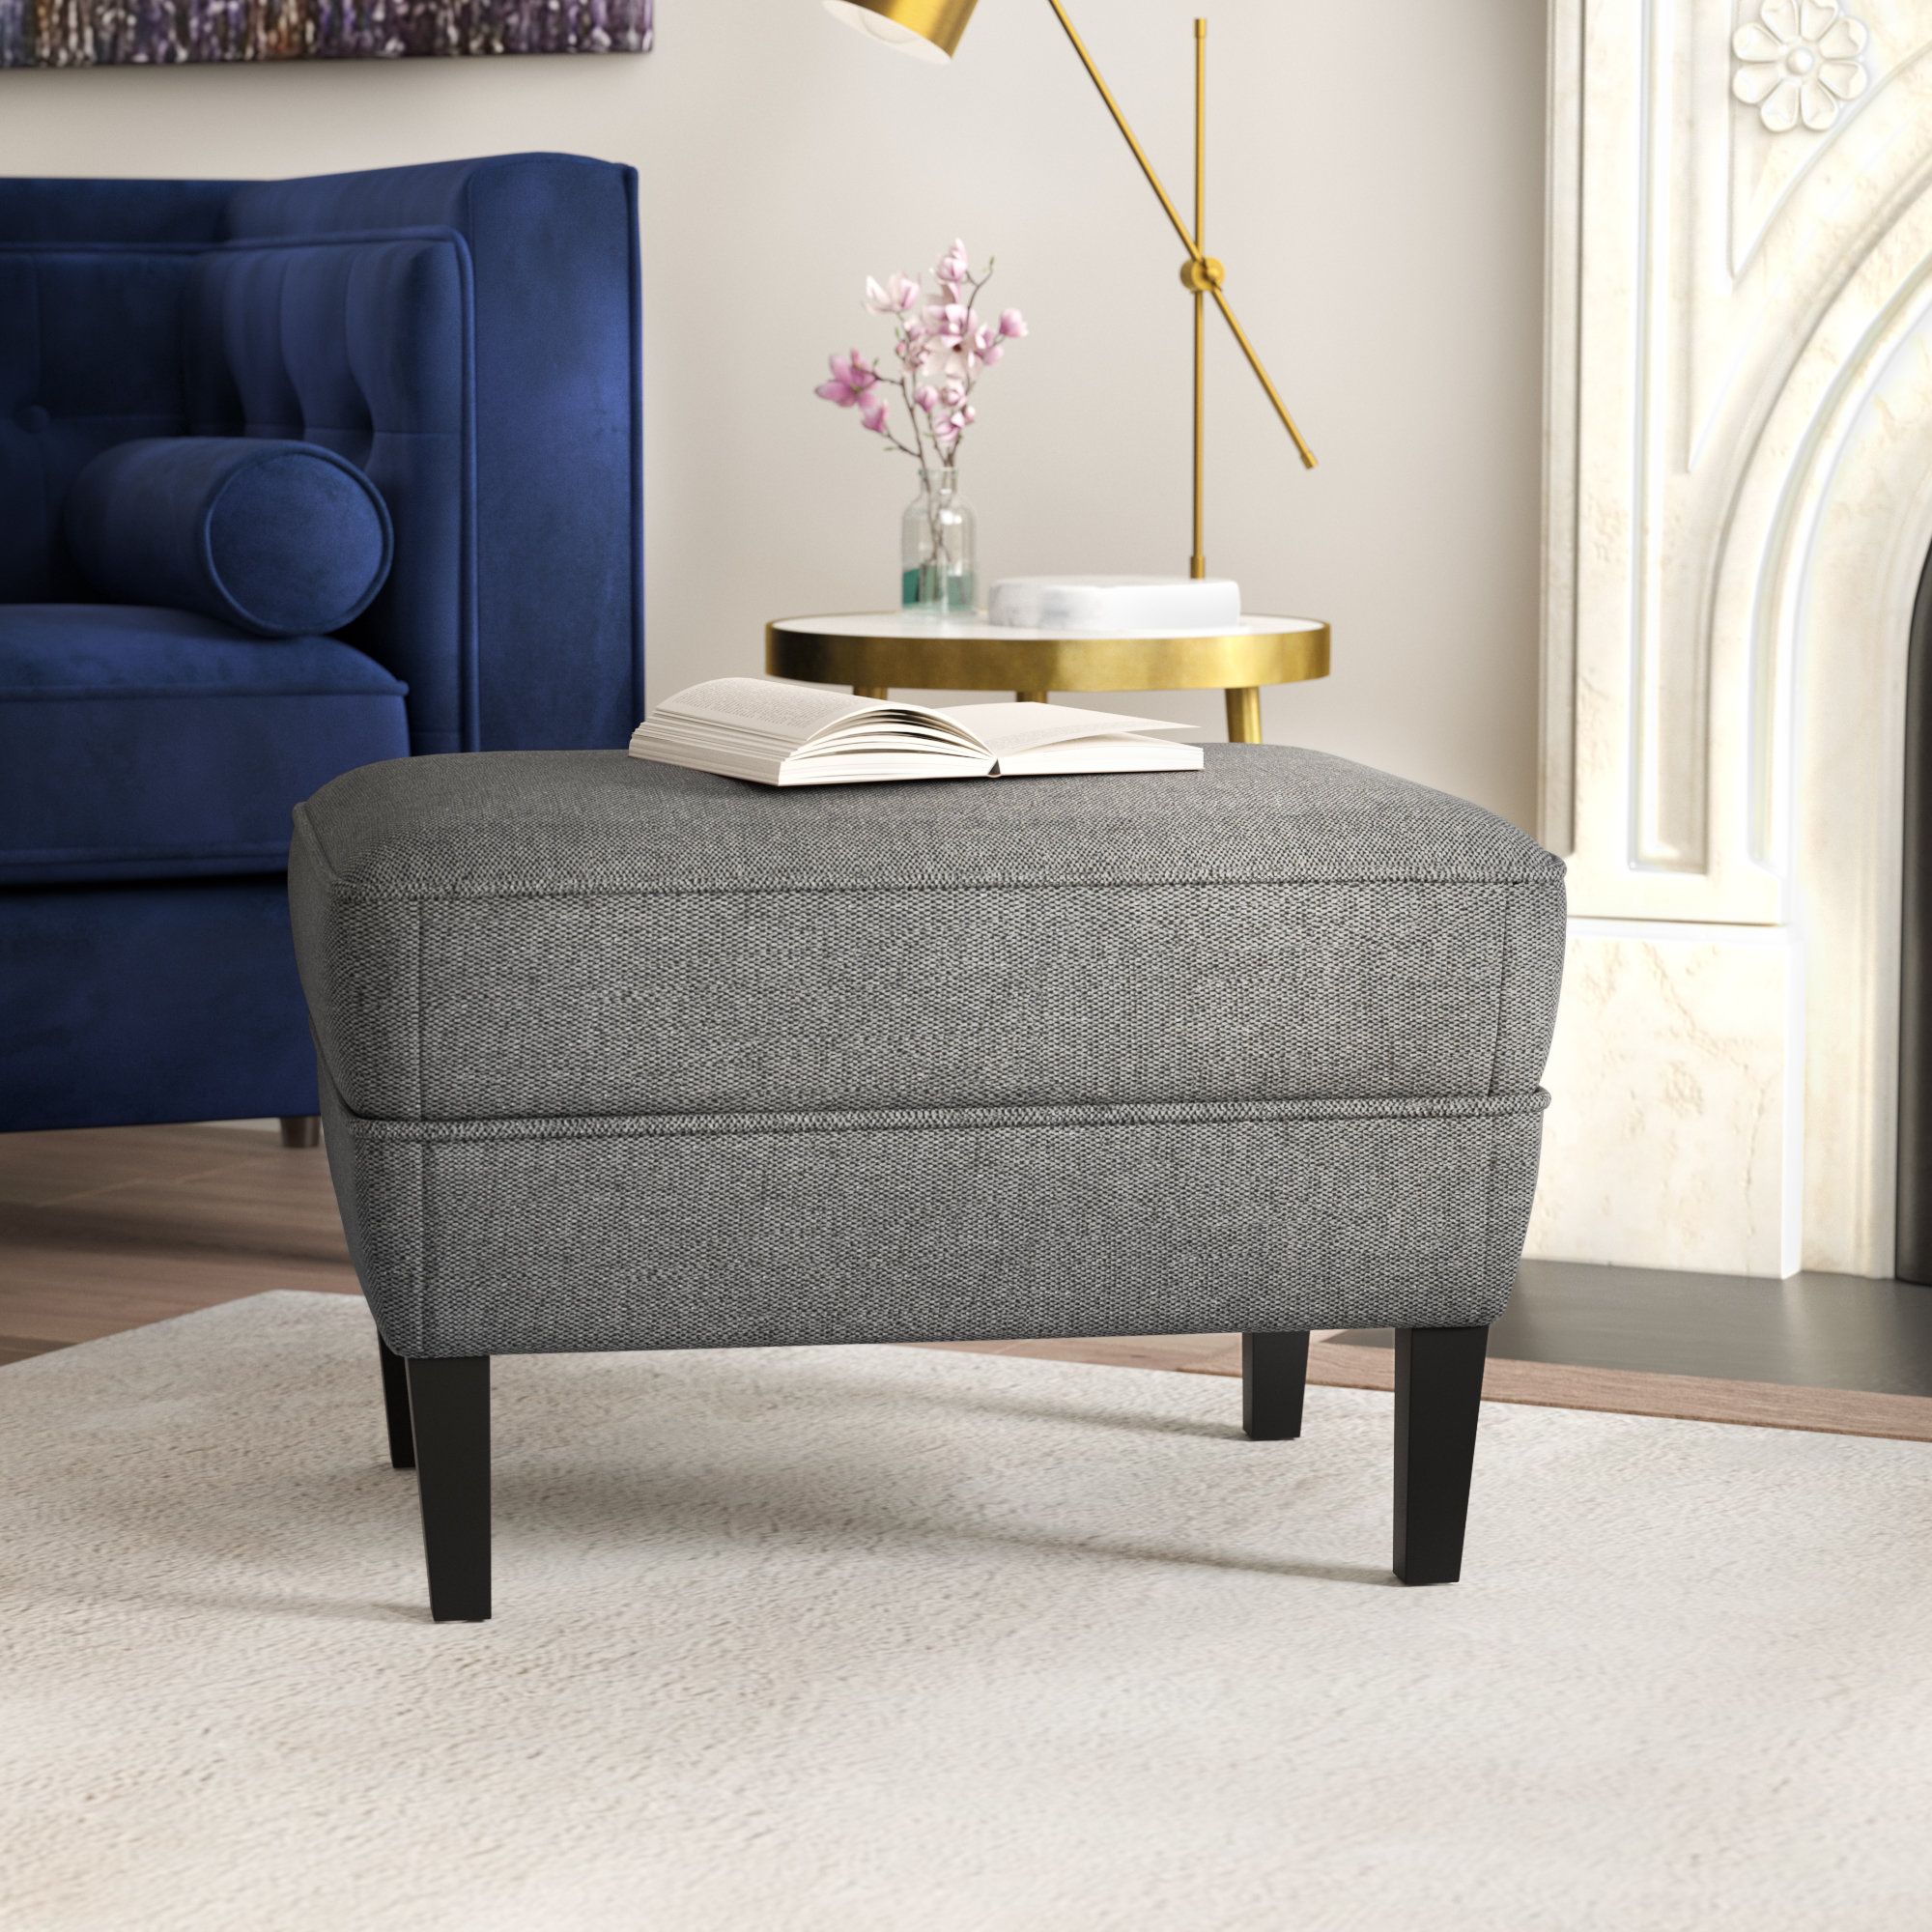 Aquarius Dark Grey Sofa Chairs Within Most Up To Date Willa Arlo Interiors Aquarius Ottoman & Reviews (Gallery 10 of 20)